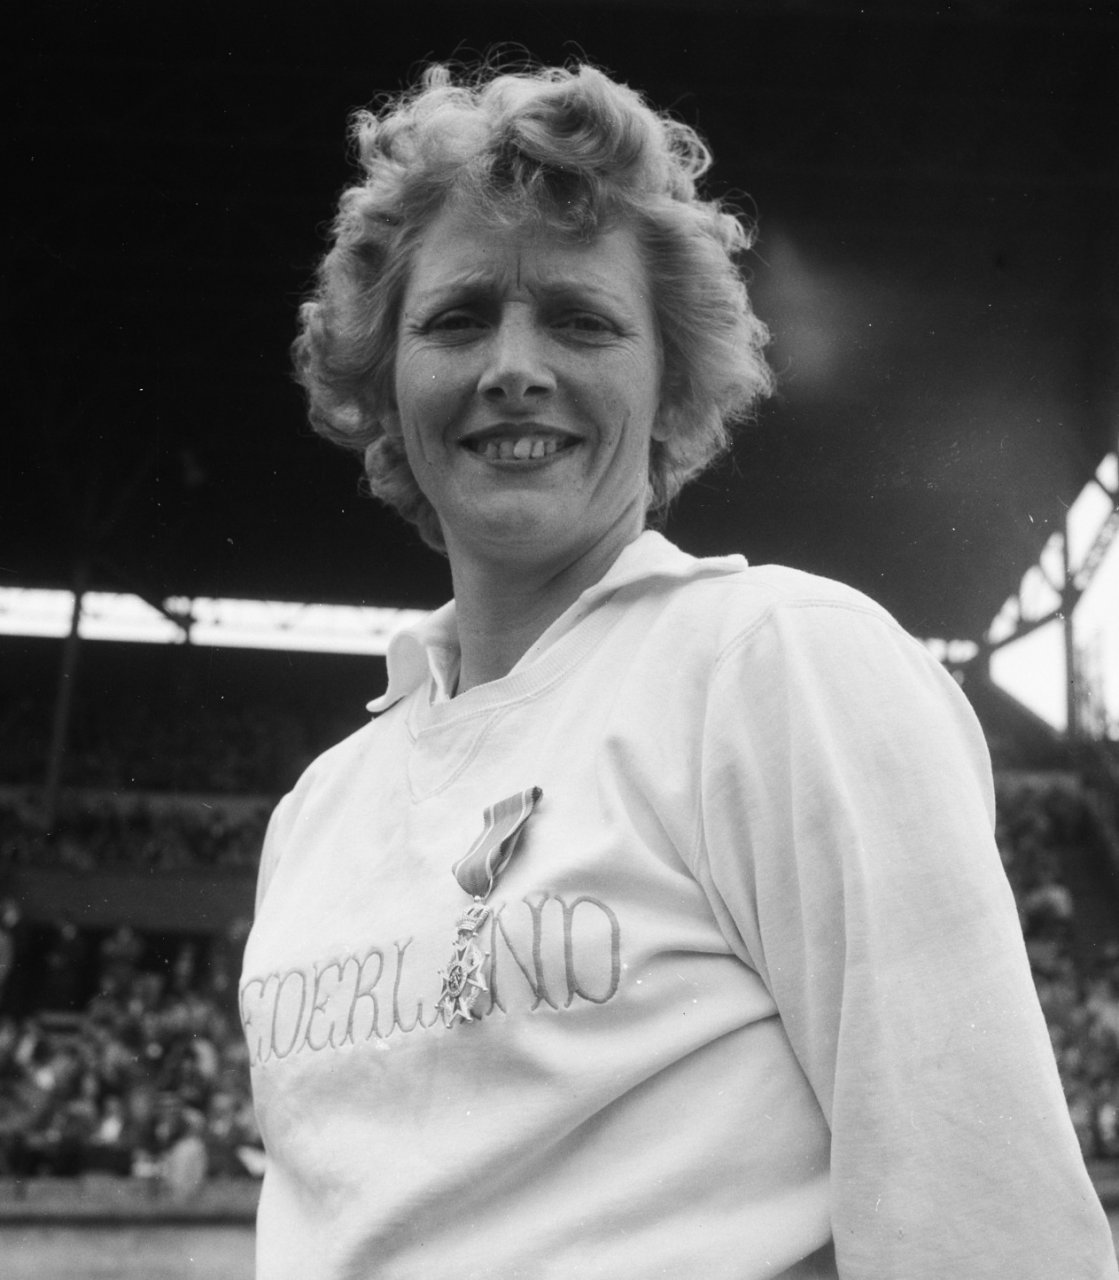 """Dutch housewife and mother of two Blankers-Koen stunned the sporting world when she won four gold medals at the 1948 London Olympics. Taking a defiant stance against sexism and ageism, the 30 year old ignored critics who felt she had no business competing in sport: """"  One newspaperman wrote that I was too old to run, that I should stay at home and take care of my children. When I got to London, I pointed my finger at him and I said: 'I show you  '."""" Blankers-Koen's medal haul earned her the nickname """"the Flying Housewife"""" and remains the largest of any female track and field athlete at a single Olympics. In 1999, she was voted the Top Female Athlete of the 20th Century by the International Amateur Athletic Federation."""